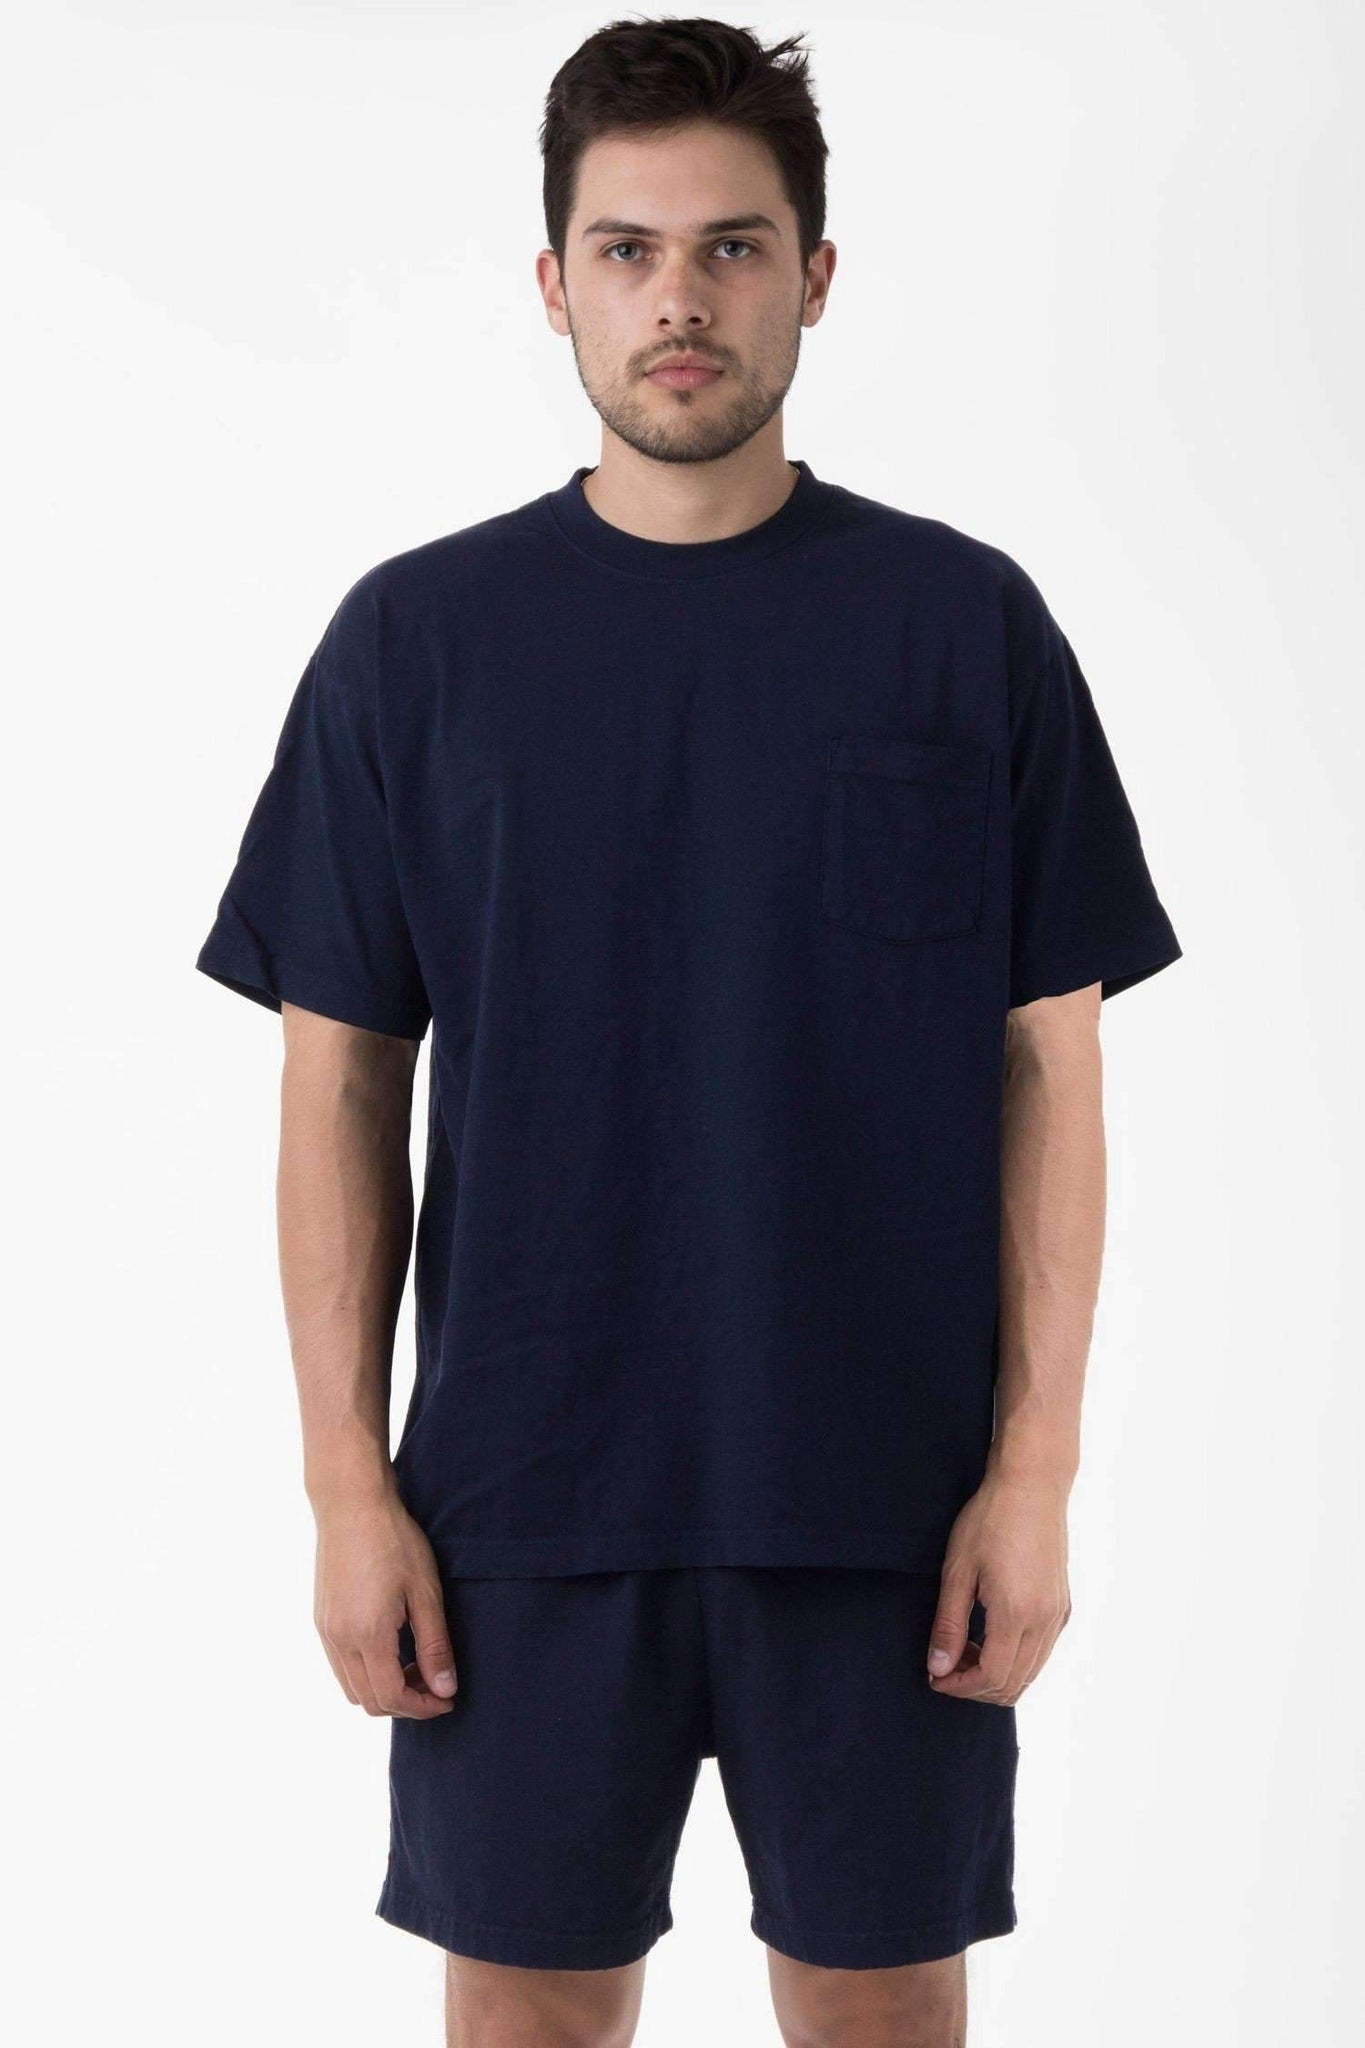 1809GD - Short Sleeve Garment Dye Pocket T-Shirt T-Shirt Los Angeles Apparel Navy XS